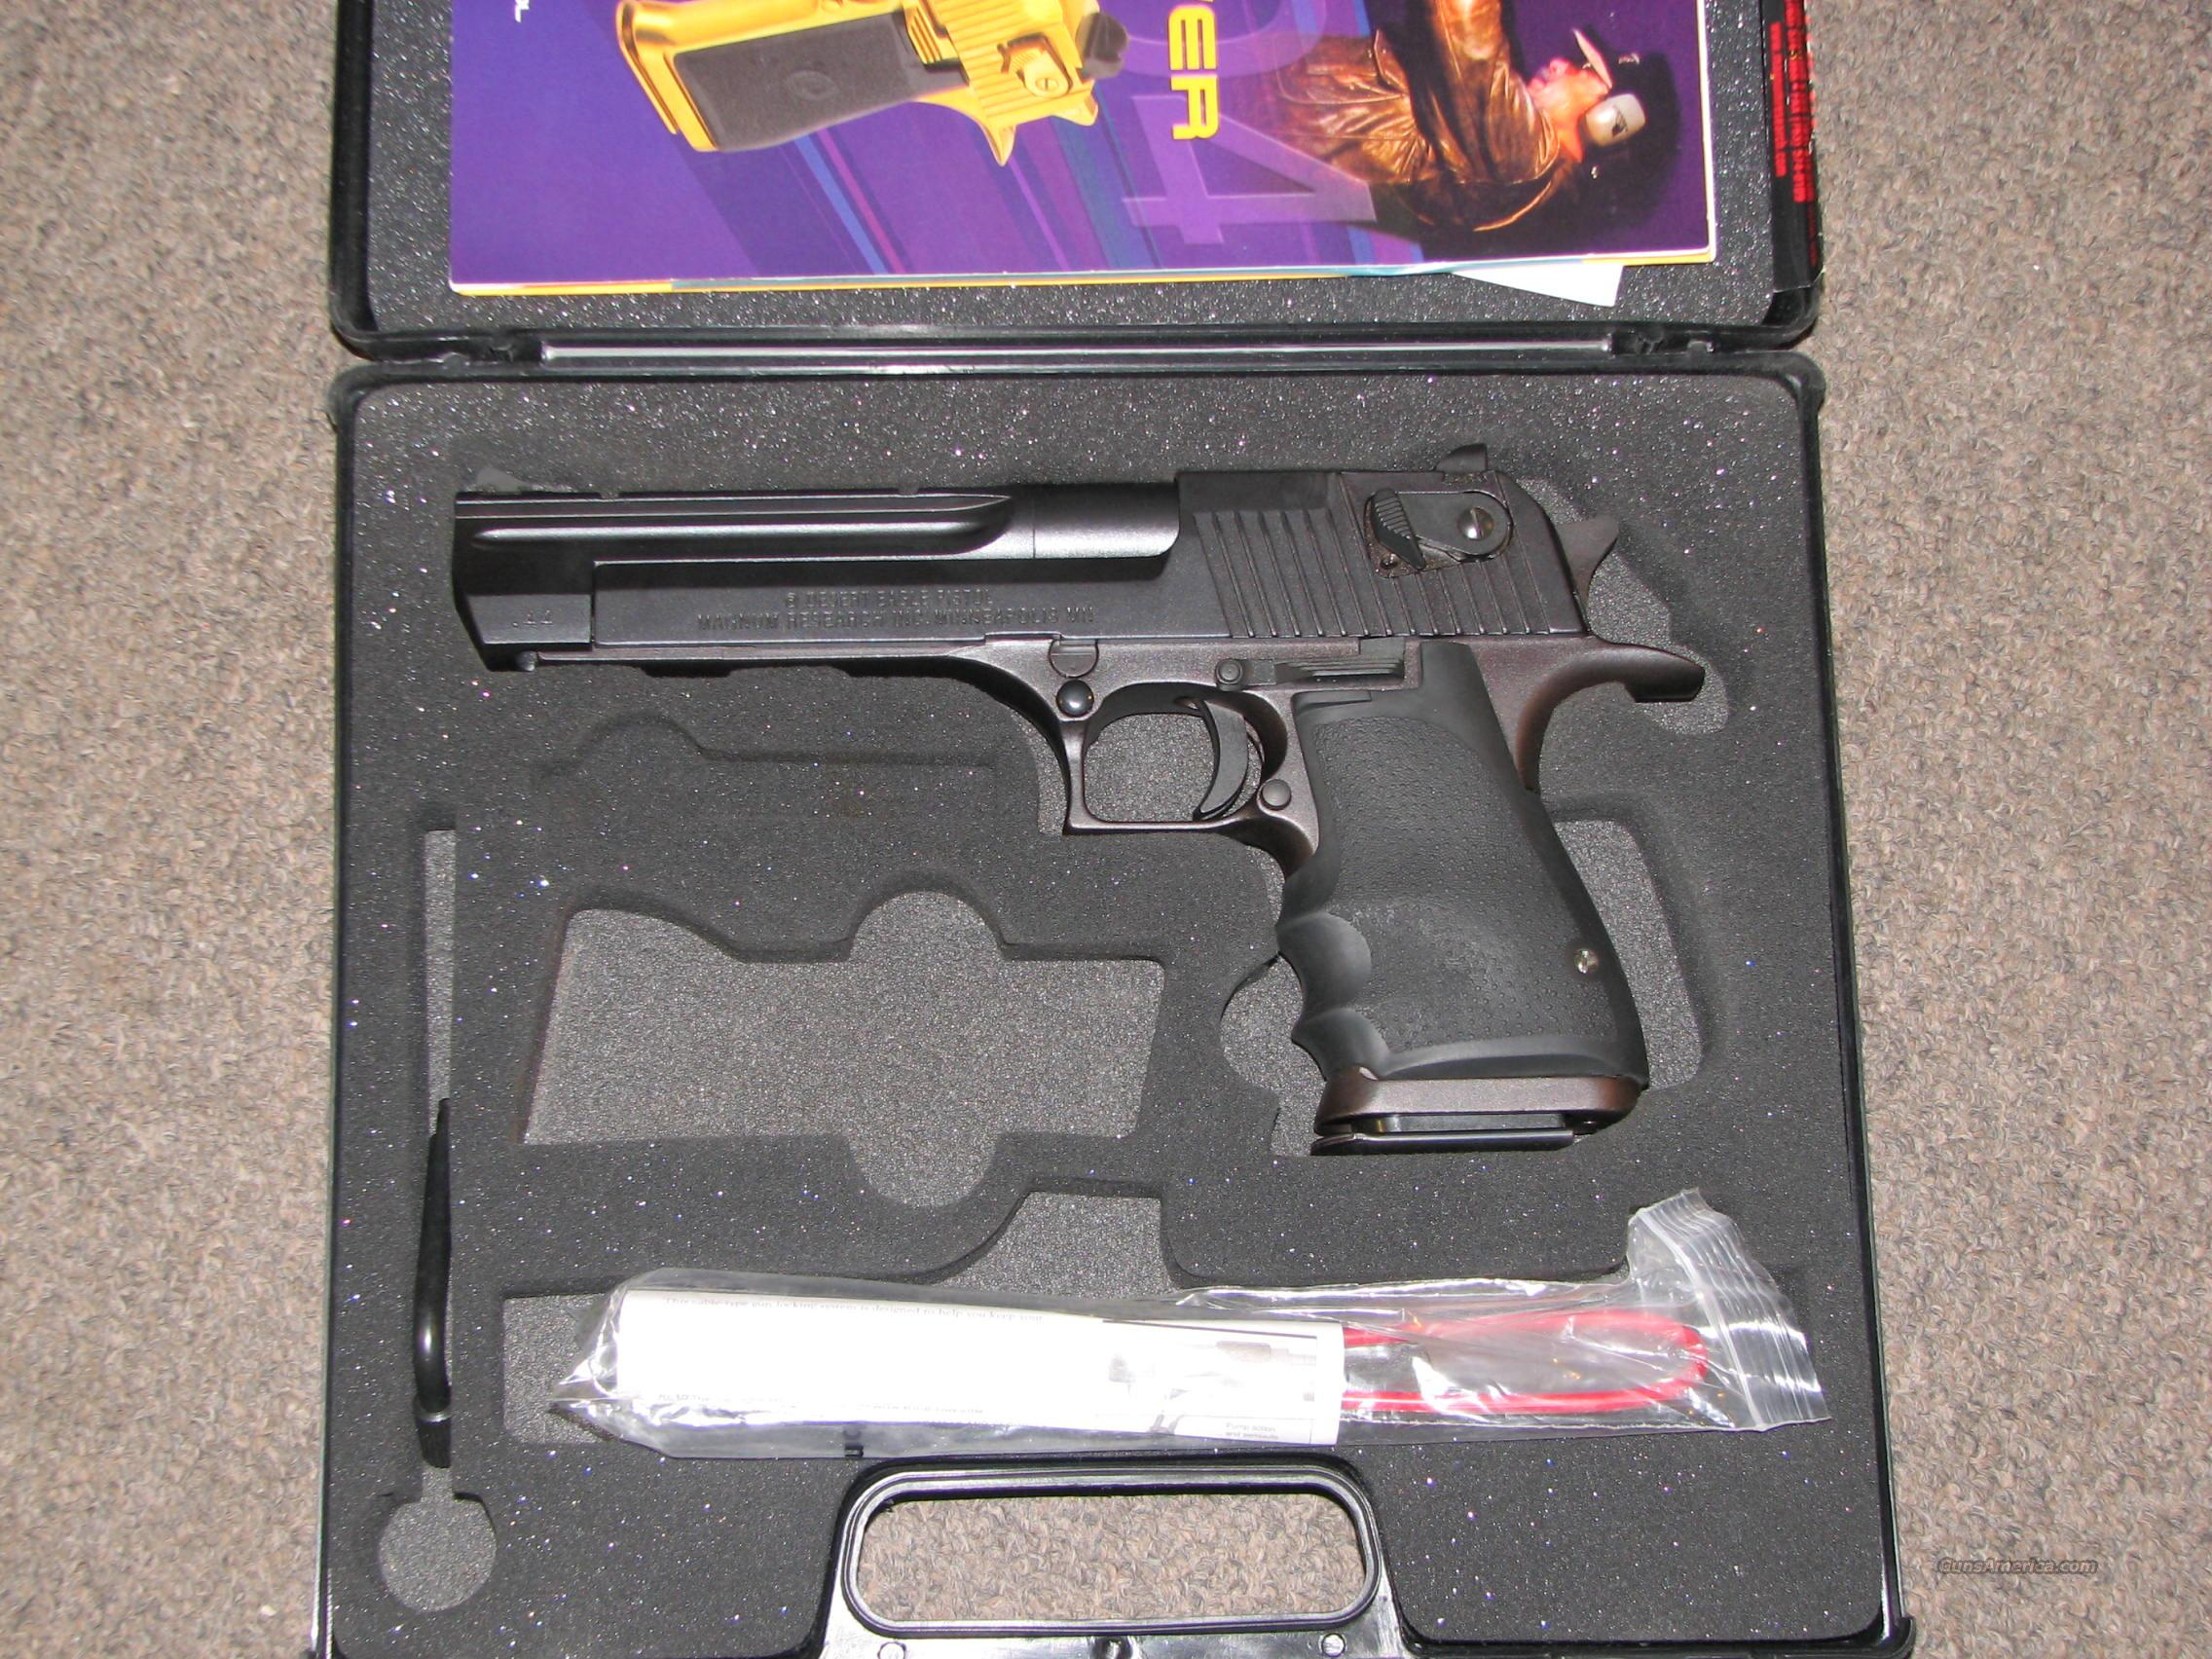 MAGNUM RESEARCH (IMI) DESERT EAGLE .44 MAG - LIKE NEW!  Guns > Pistols > Magnum Research Pistols